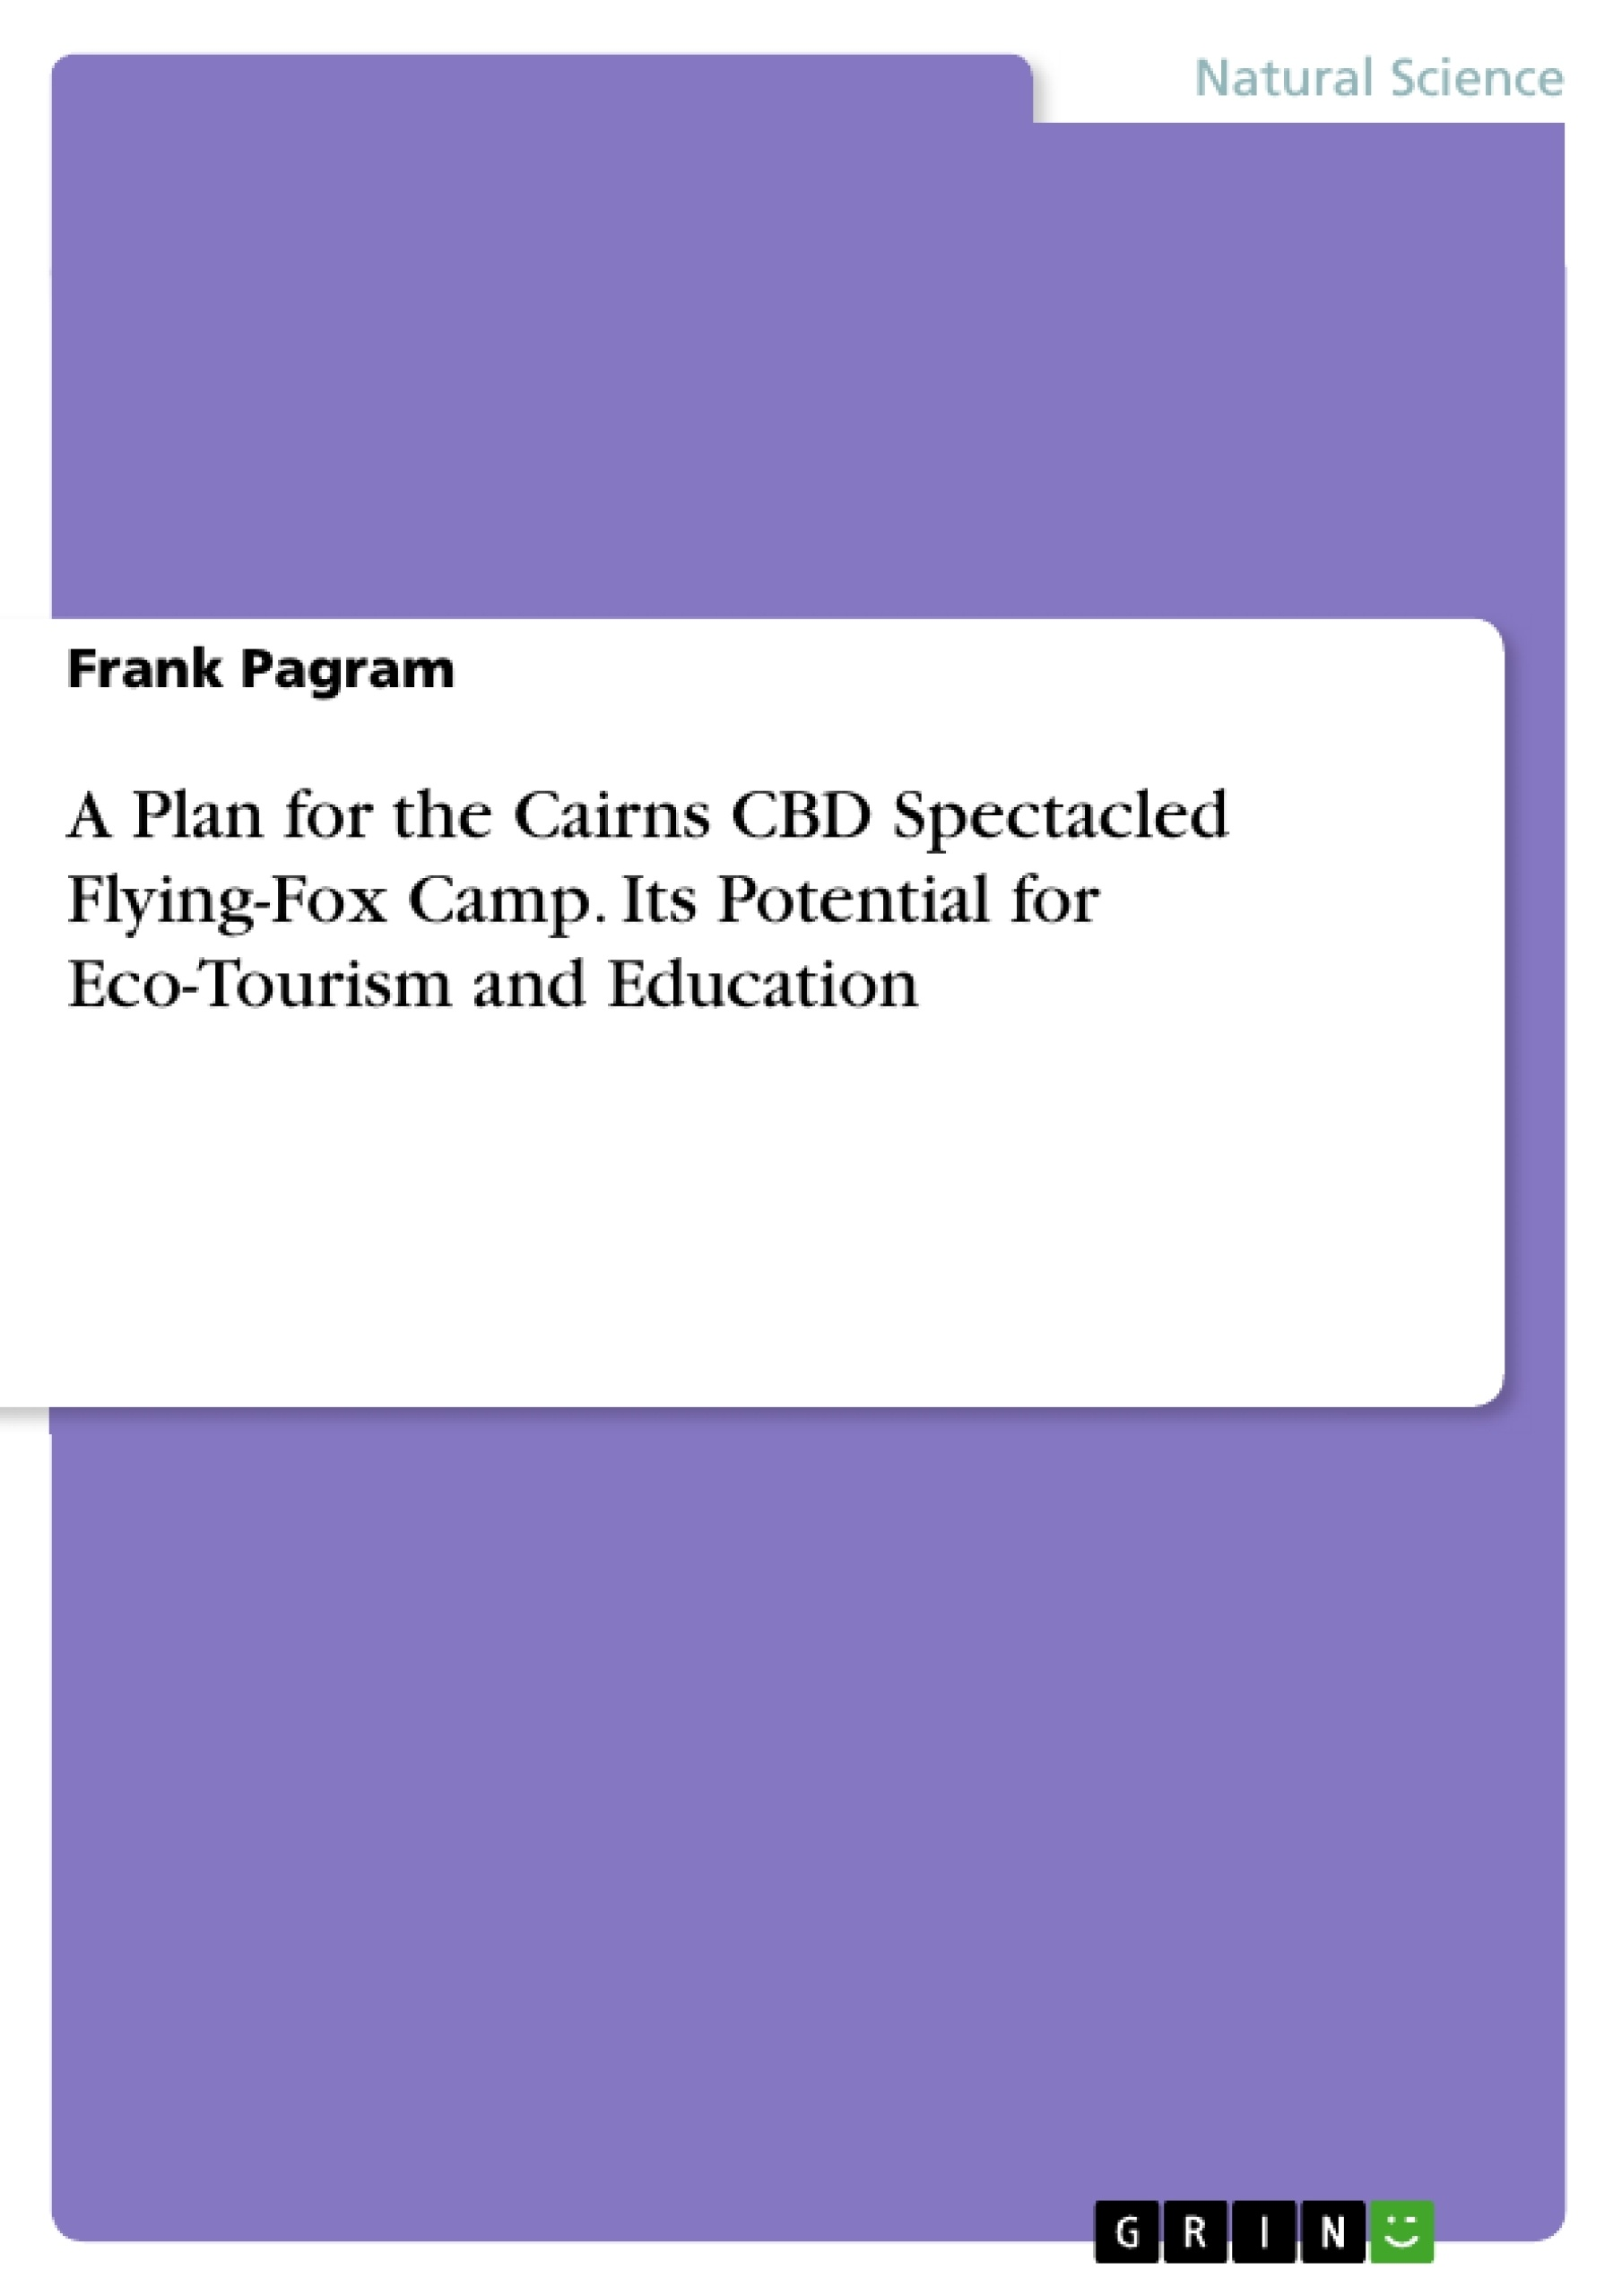 Title: A Plan for the Cairns CBD Spectacled Flying-Fox Camp. Its Potential for Eco-Tourism and Education